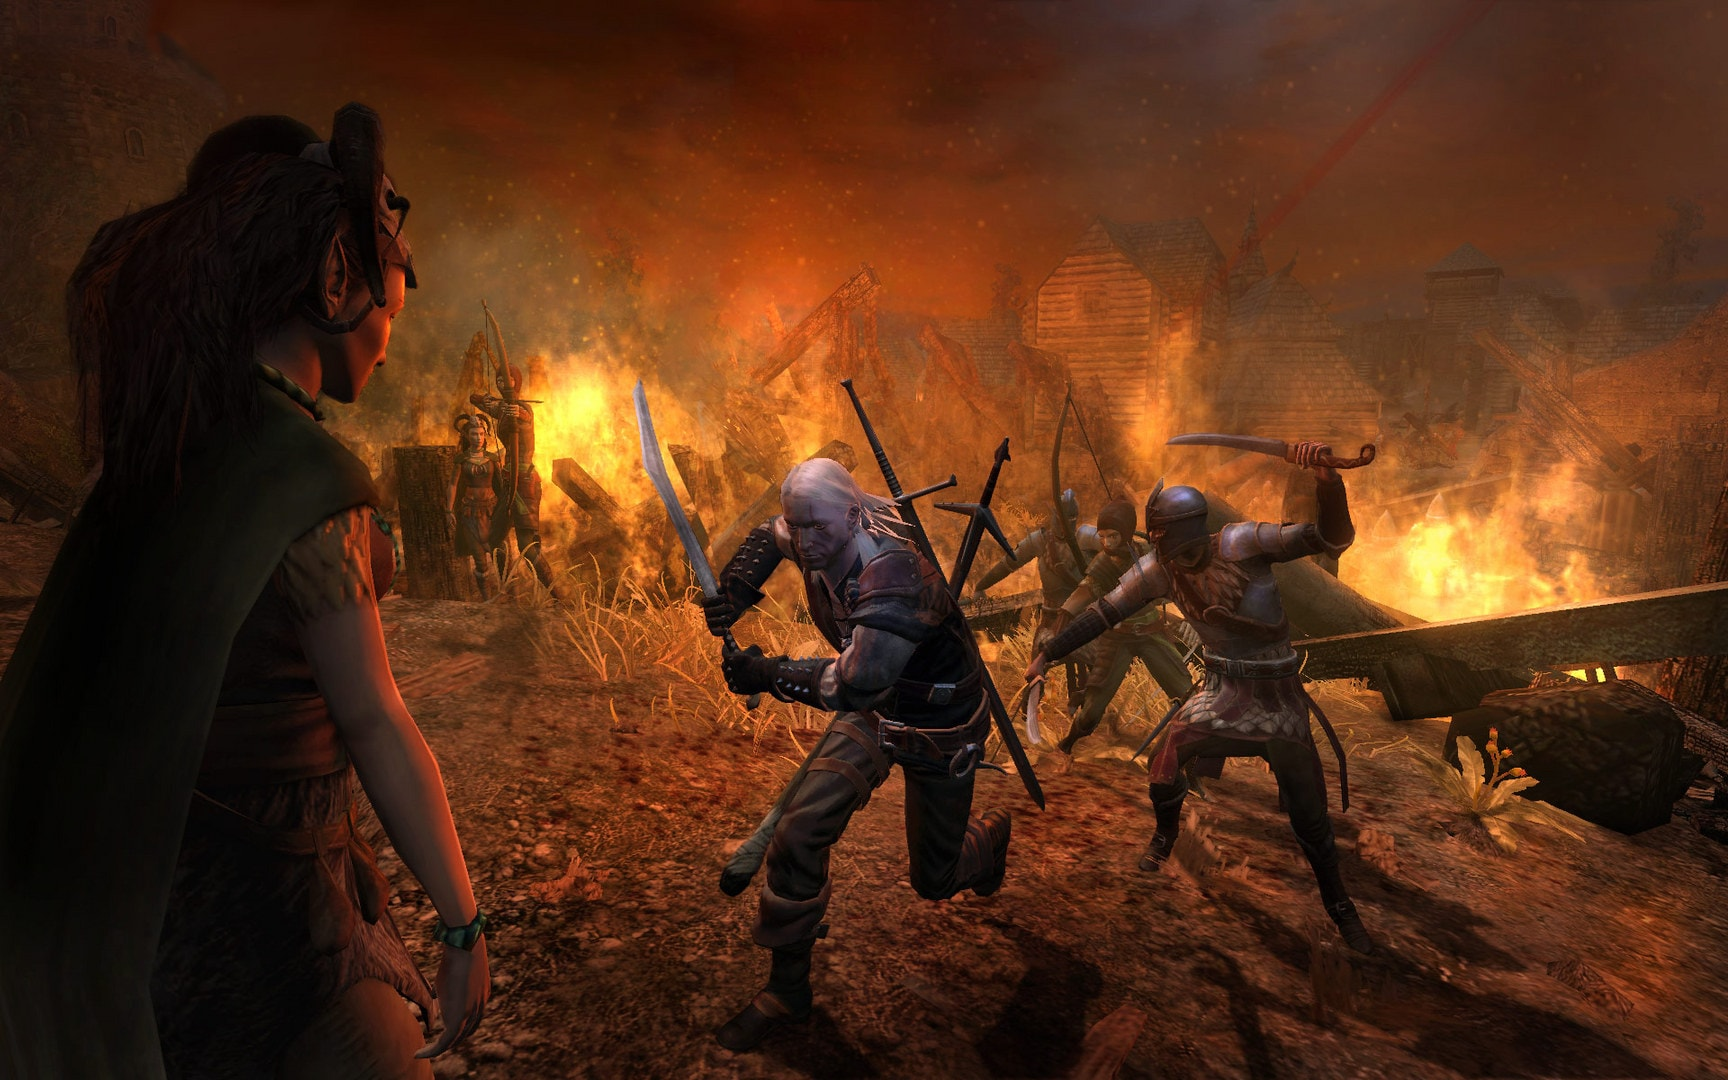 The Witcher: Enhanced Edition Director's Cut Steam Gift GLOBAL - 3